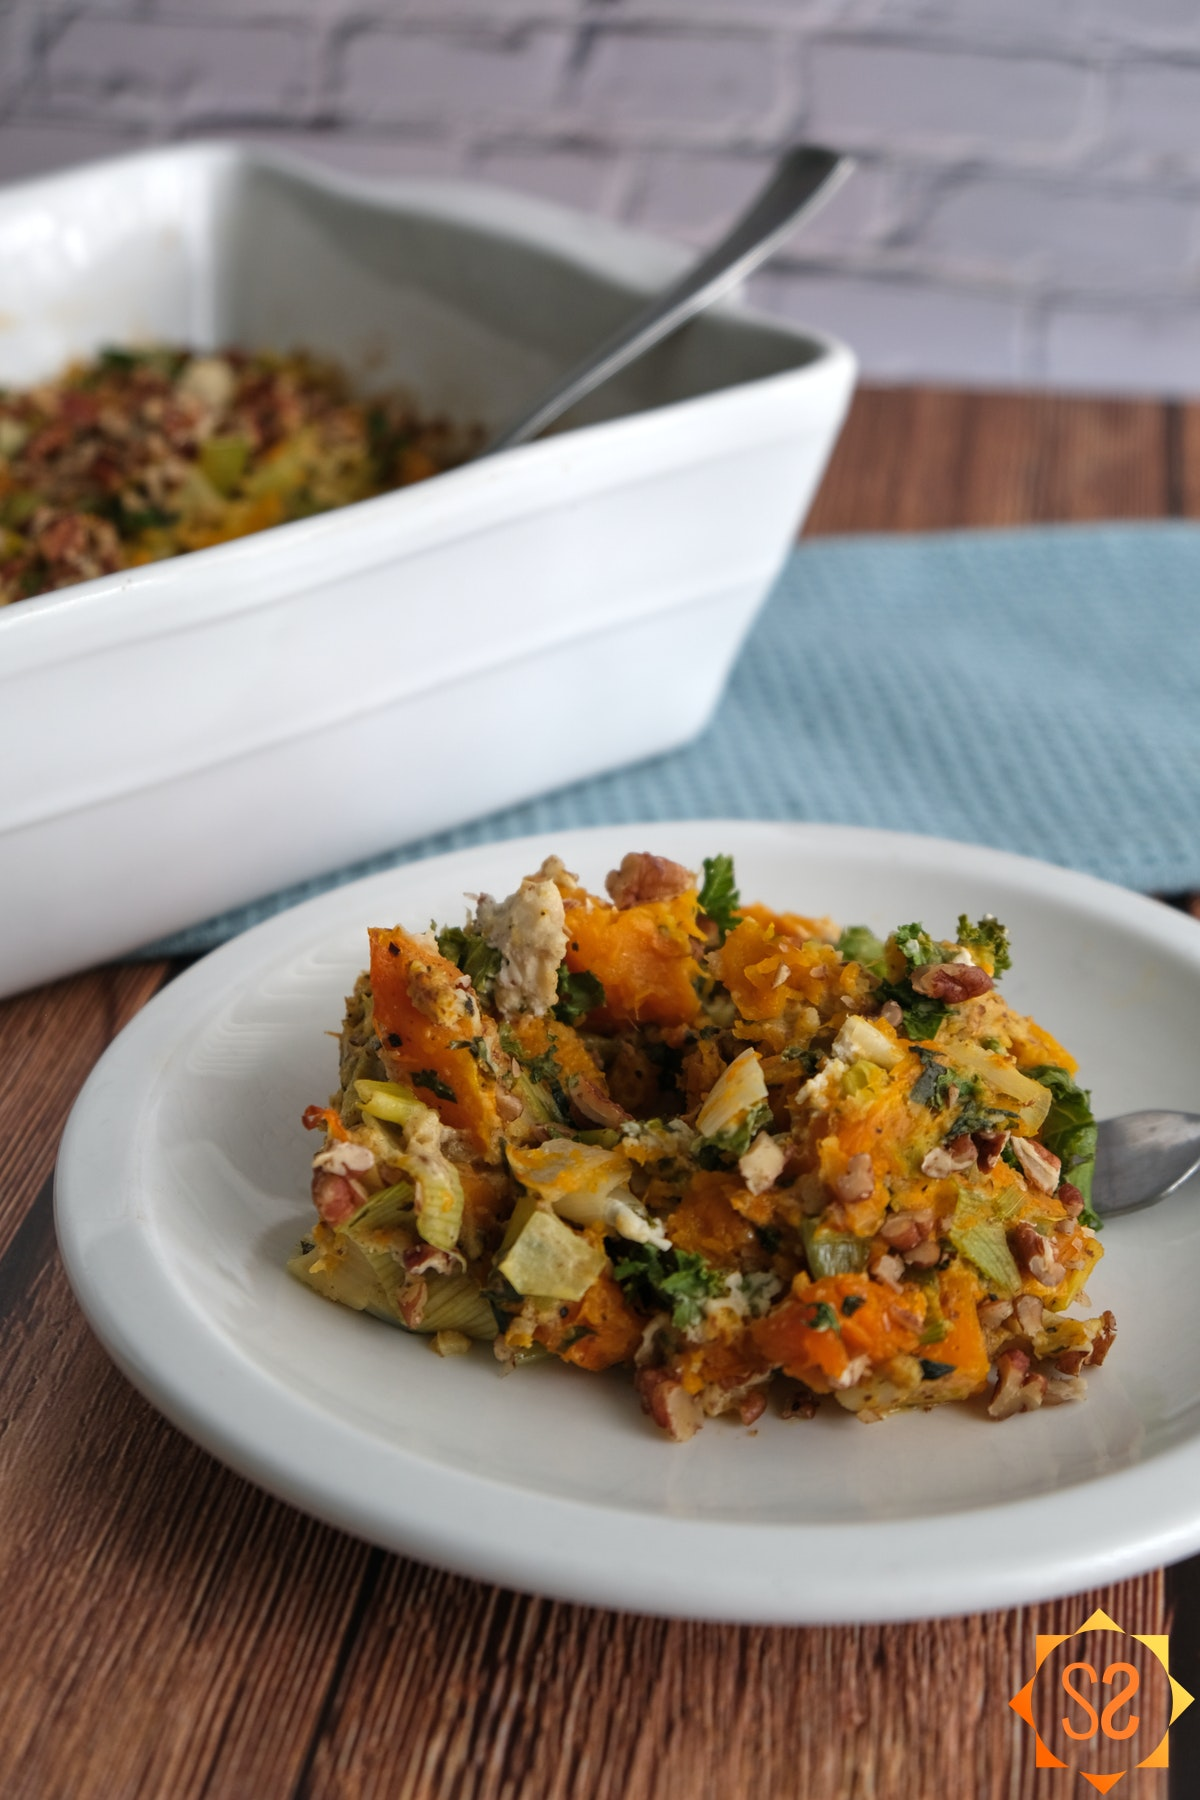 This butternut squash casserole provides a great balance for heavier holiday dishes.